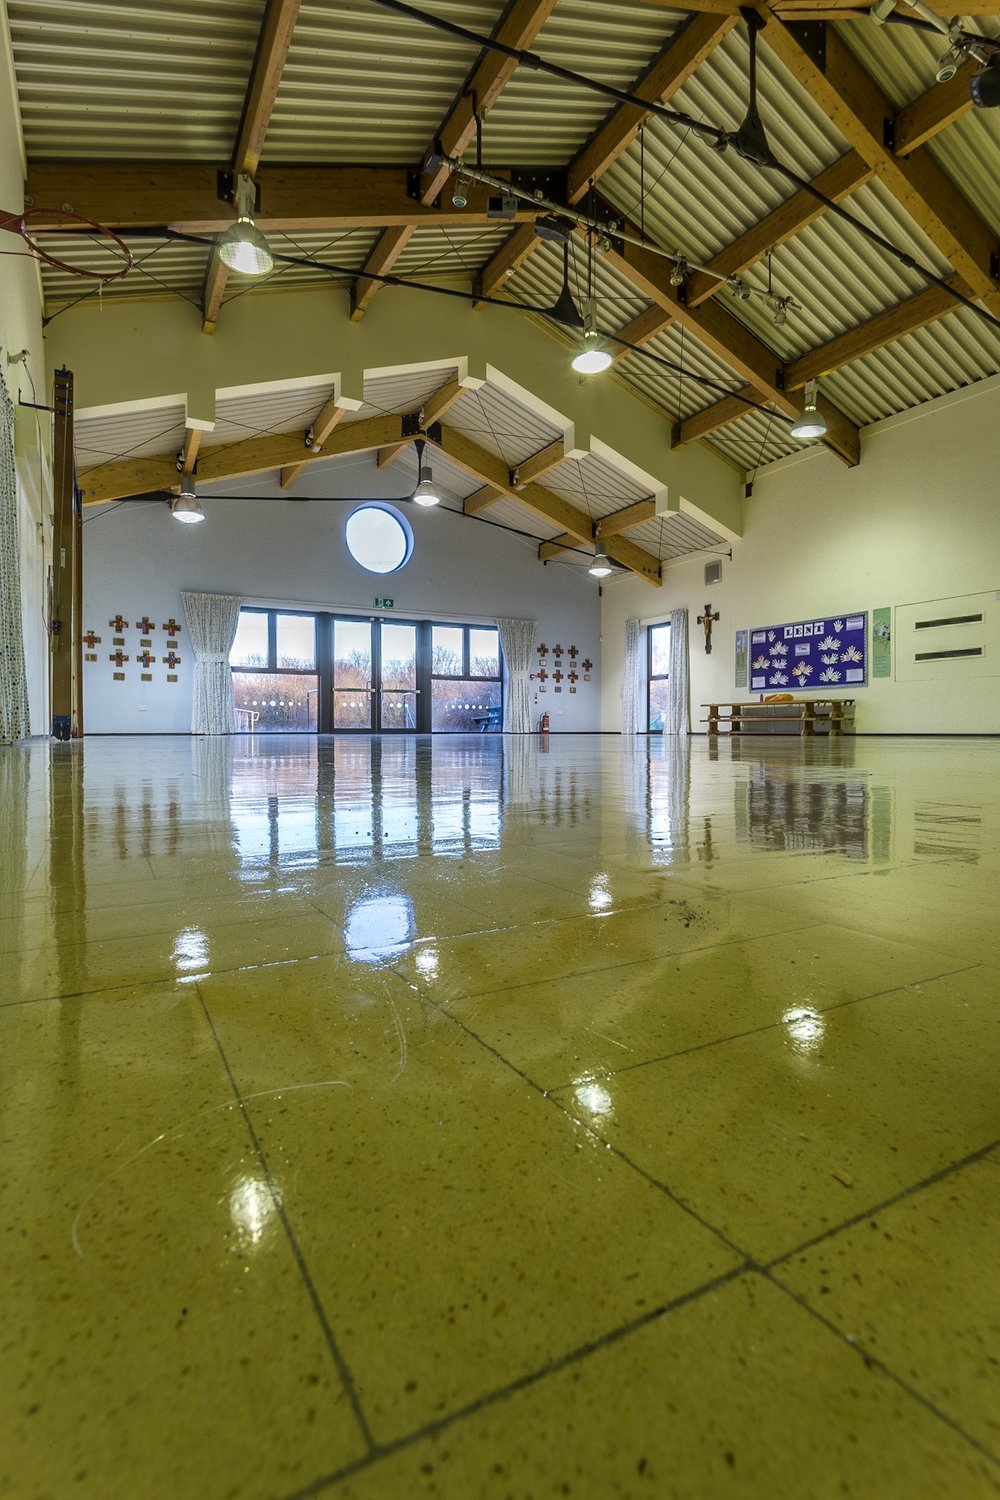 Picture of an extension to a school hall by Rick McEvoy interior photographer in Hampshire